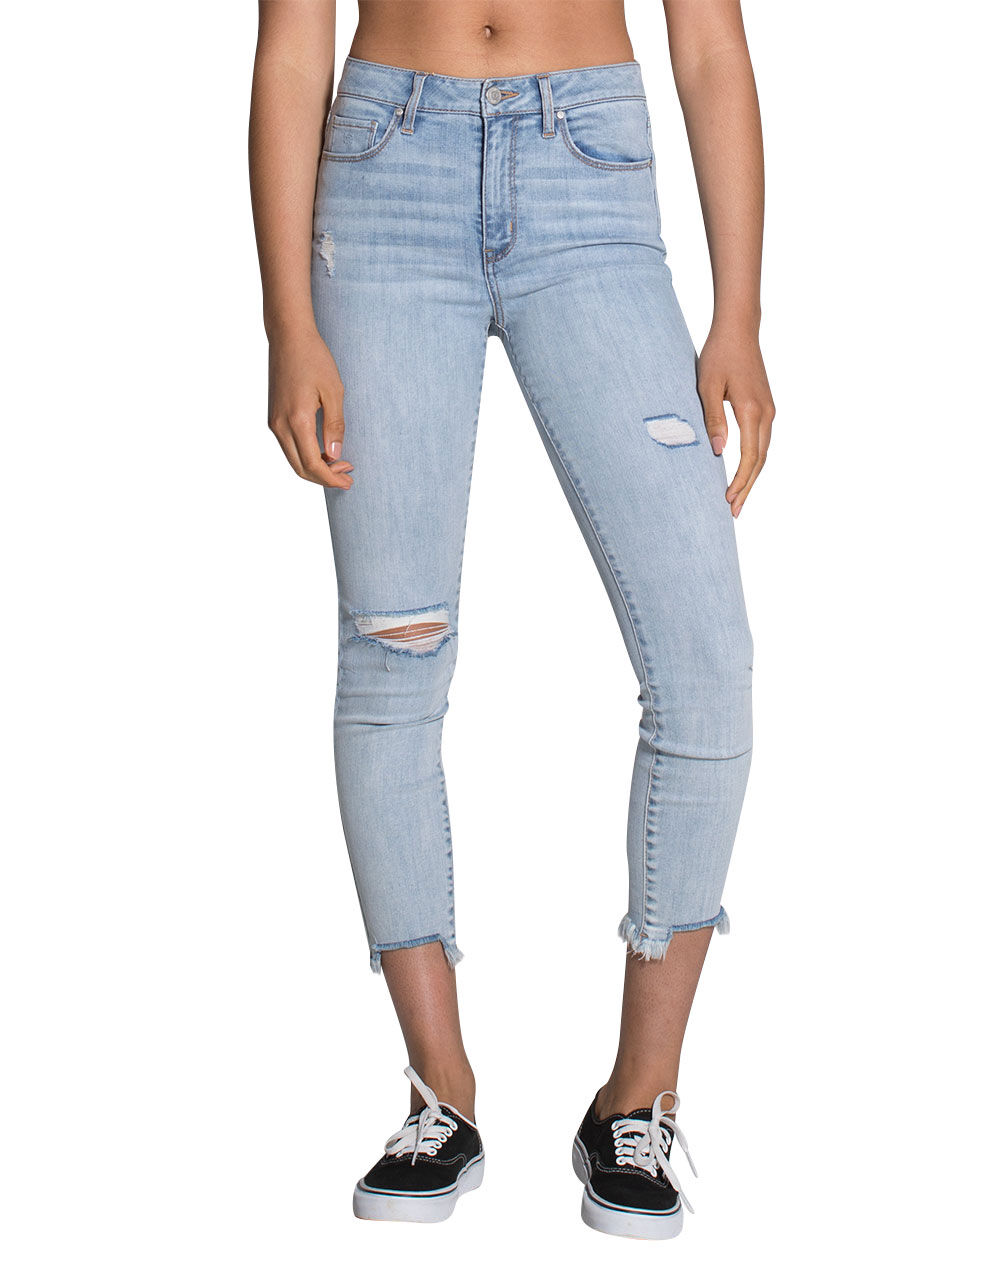 RSQ CALI HIGH RISE FRAY ANKLE RIPPED SKINNY JEANS